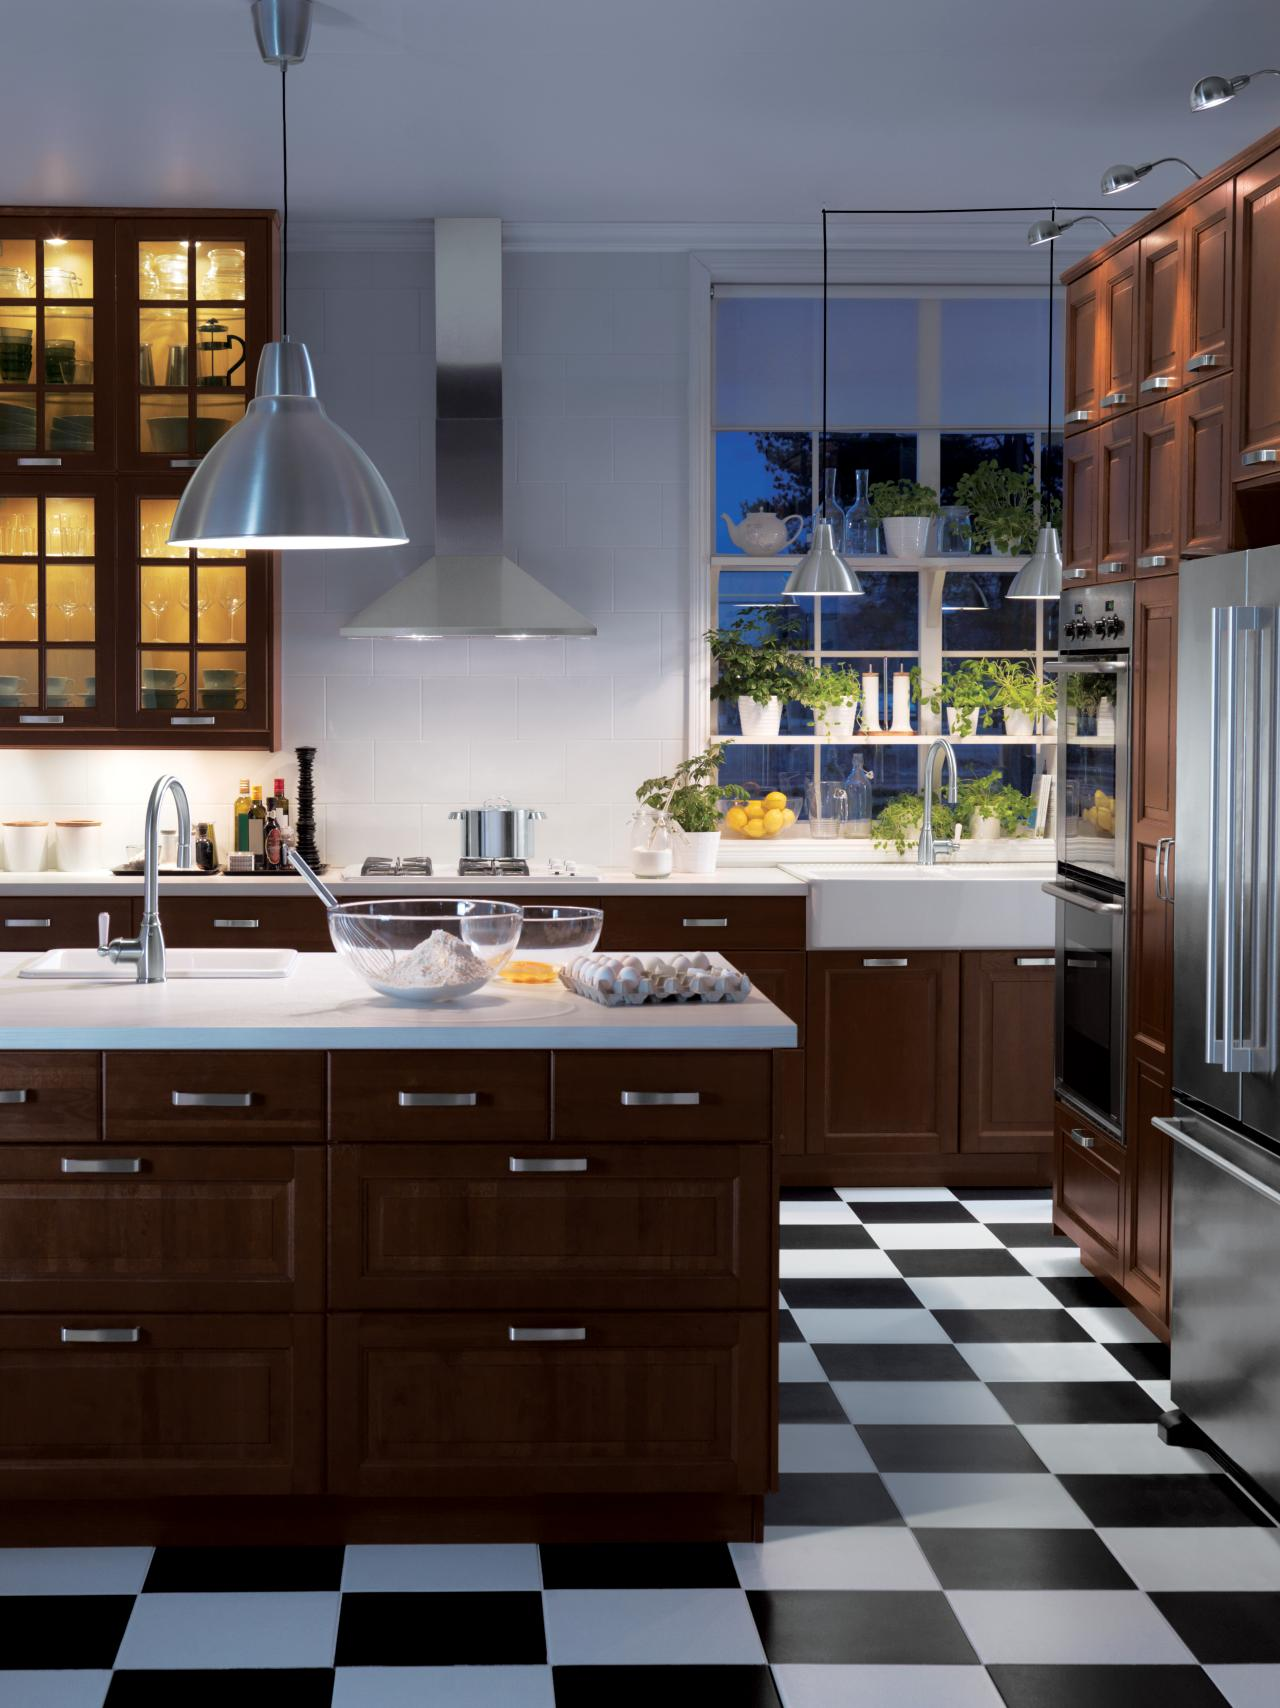 under budget remodeling our costs for remodel a kitchen sharing on image insight